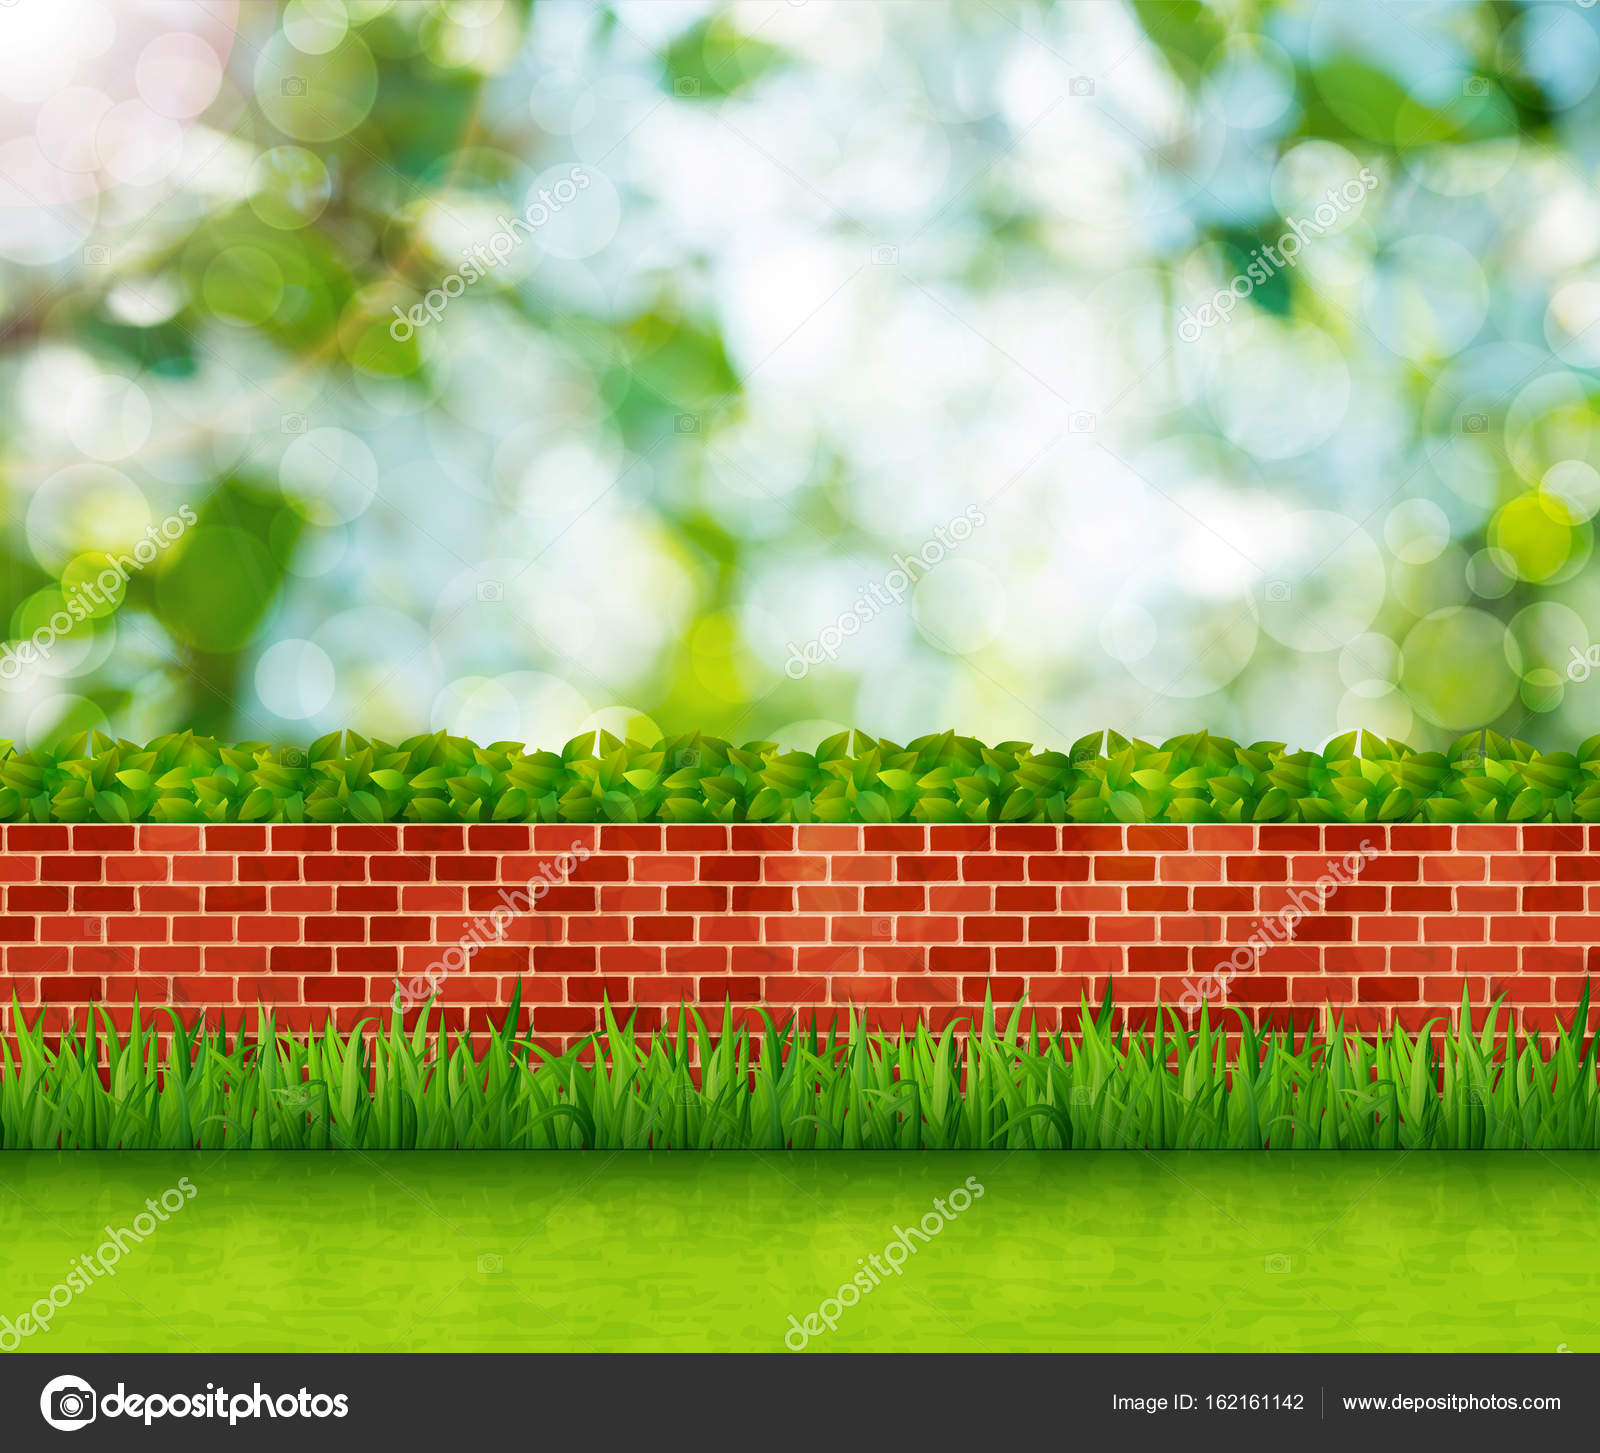 Garden Background With Brick Wall And Green Grass Stock Photo